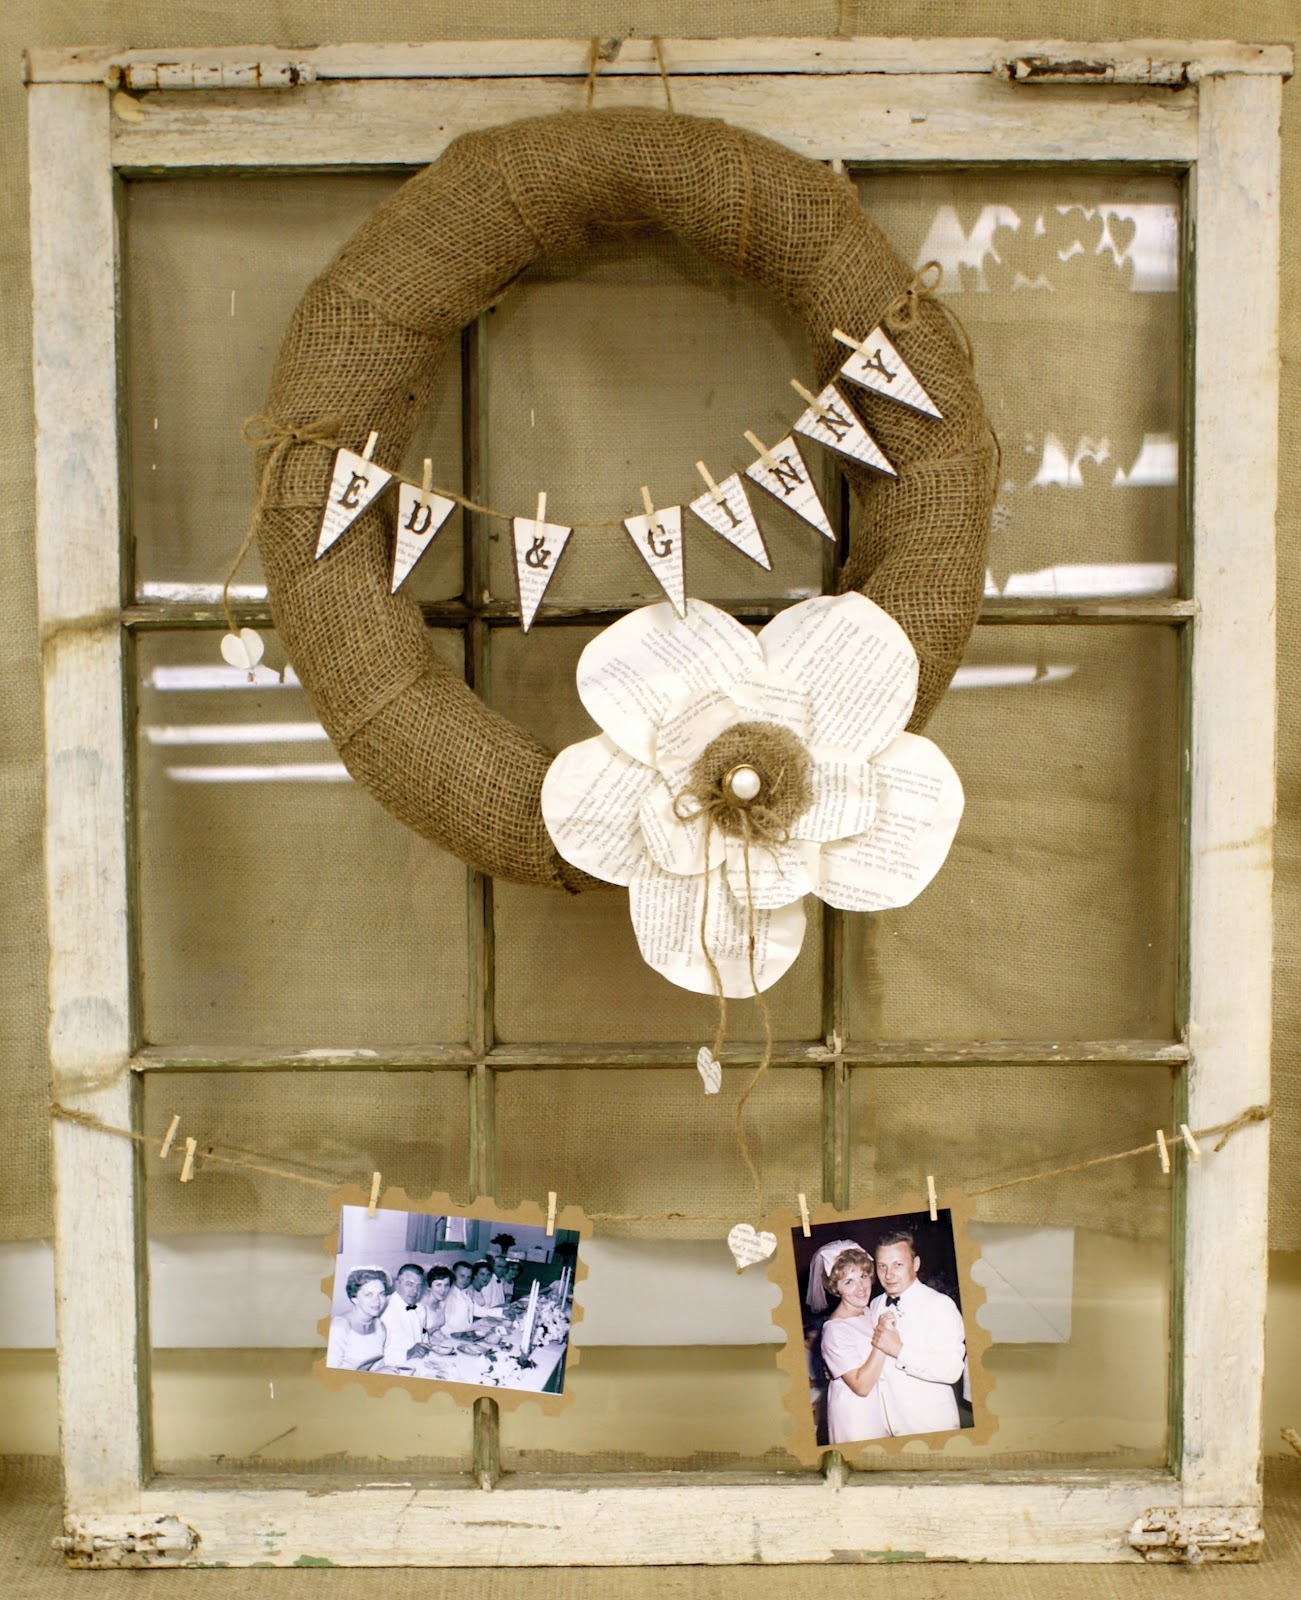 50th wedding anniversary party decoration ideas karenscraps 50th anniversary decorations 1157